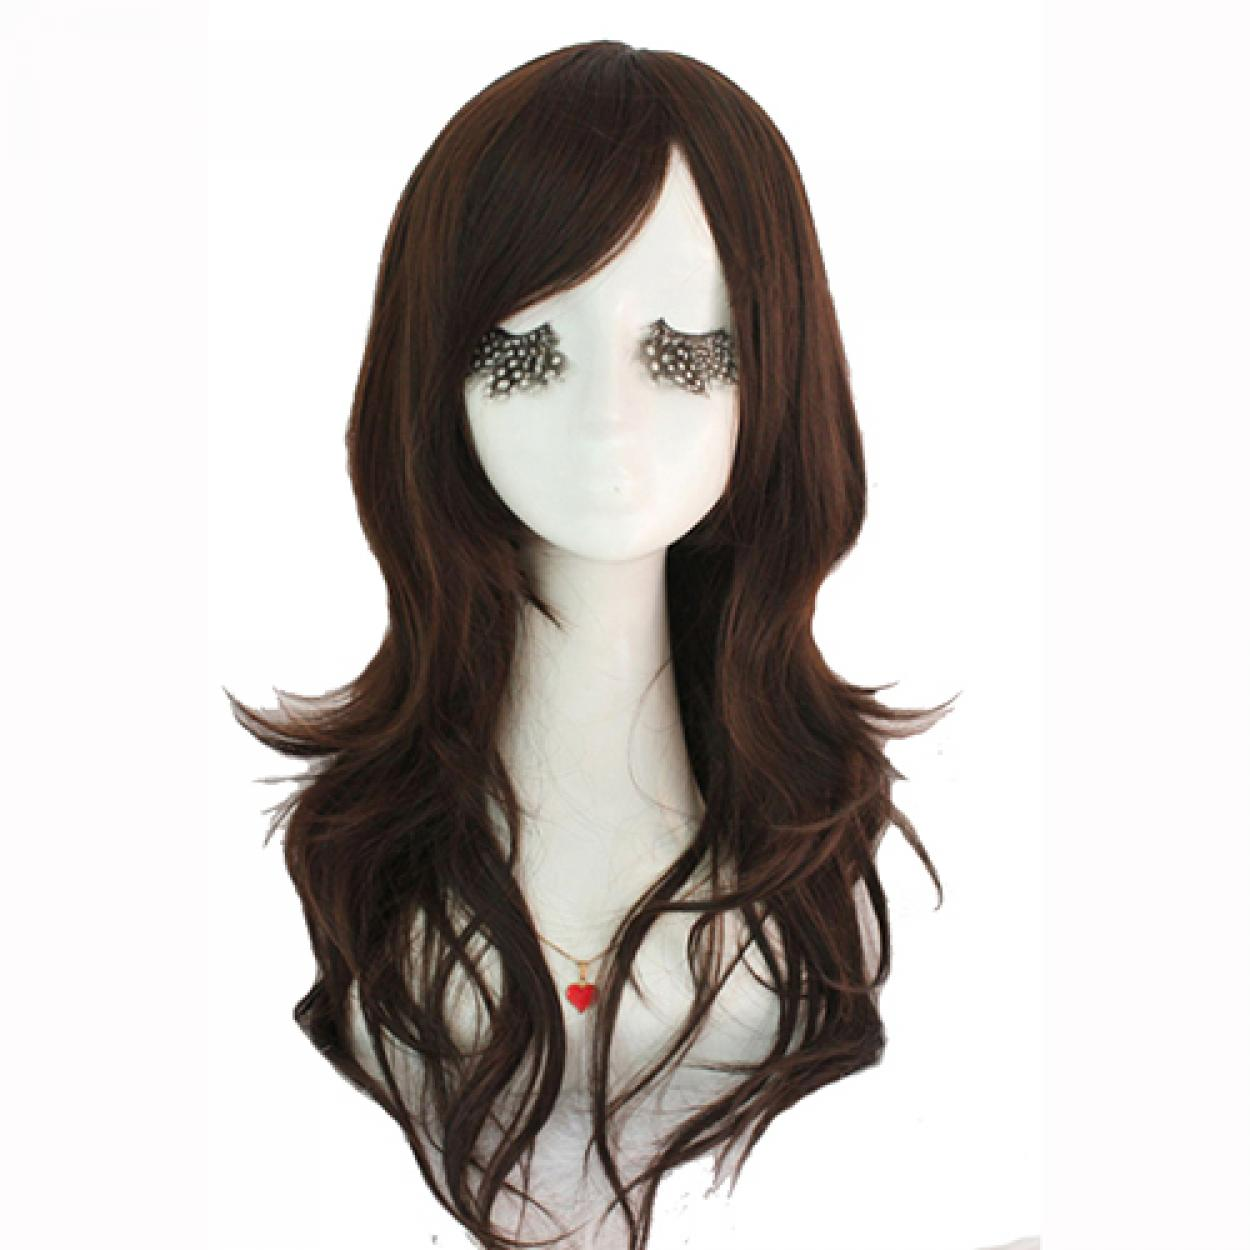 Fashion Women Cute Lady Wig 60cm/24inches Synthetic Wigs Hair Mixed Beige